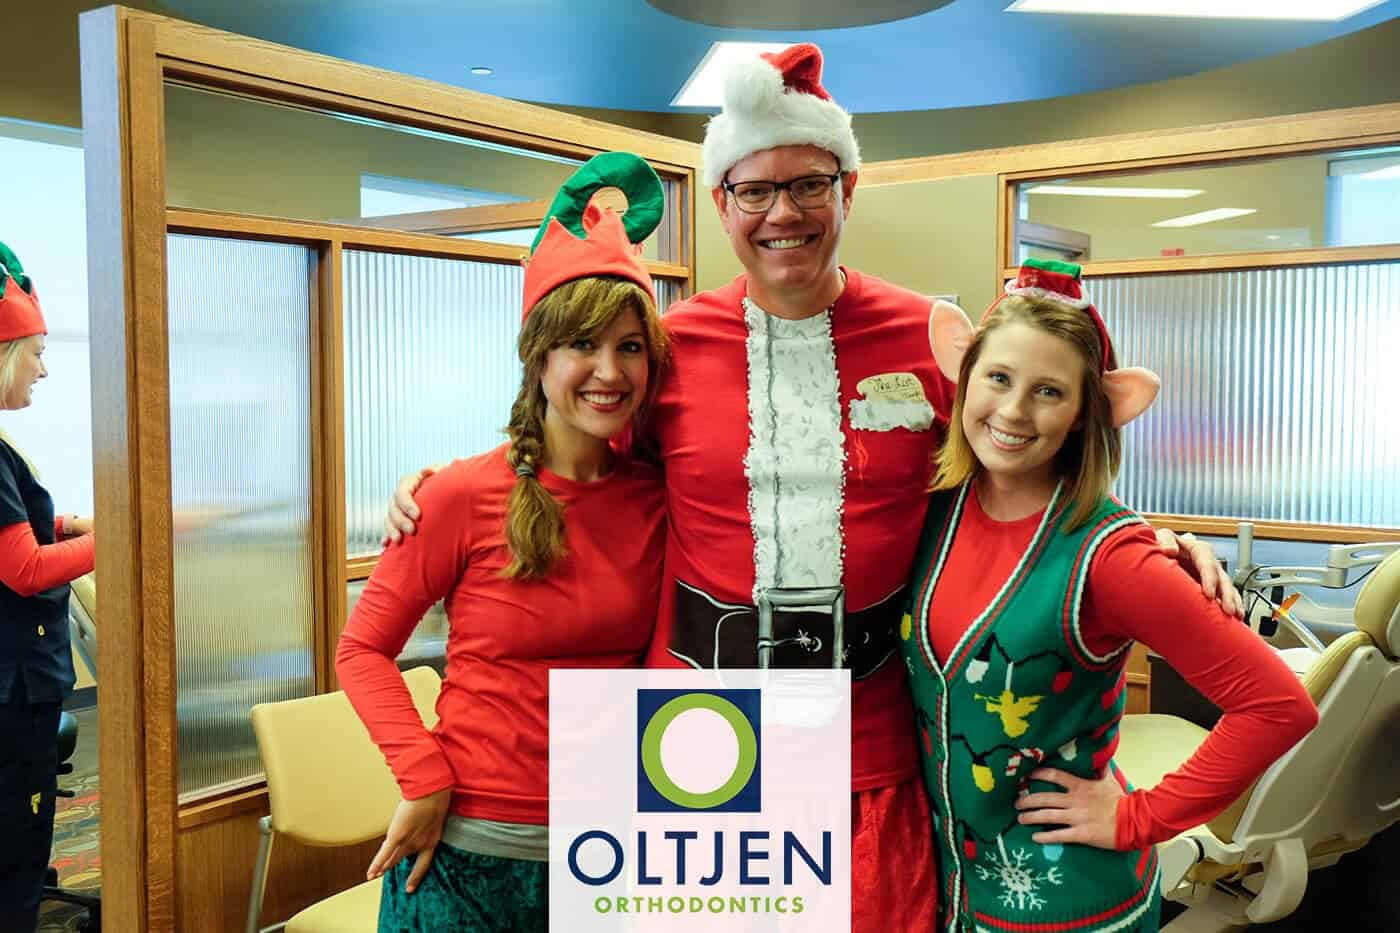 Oltjen-Orthodontics-Christmas-in-July-10-of-10